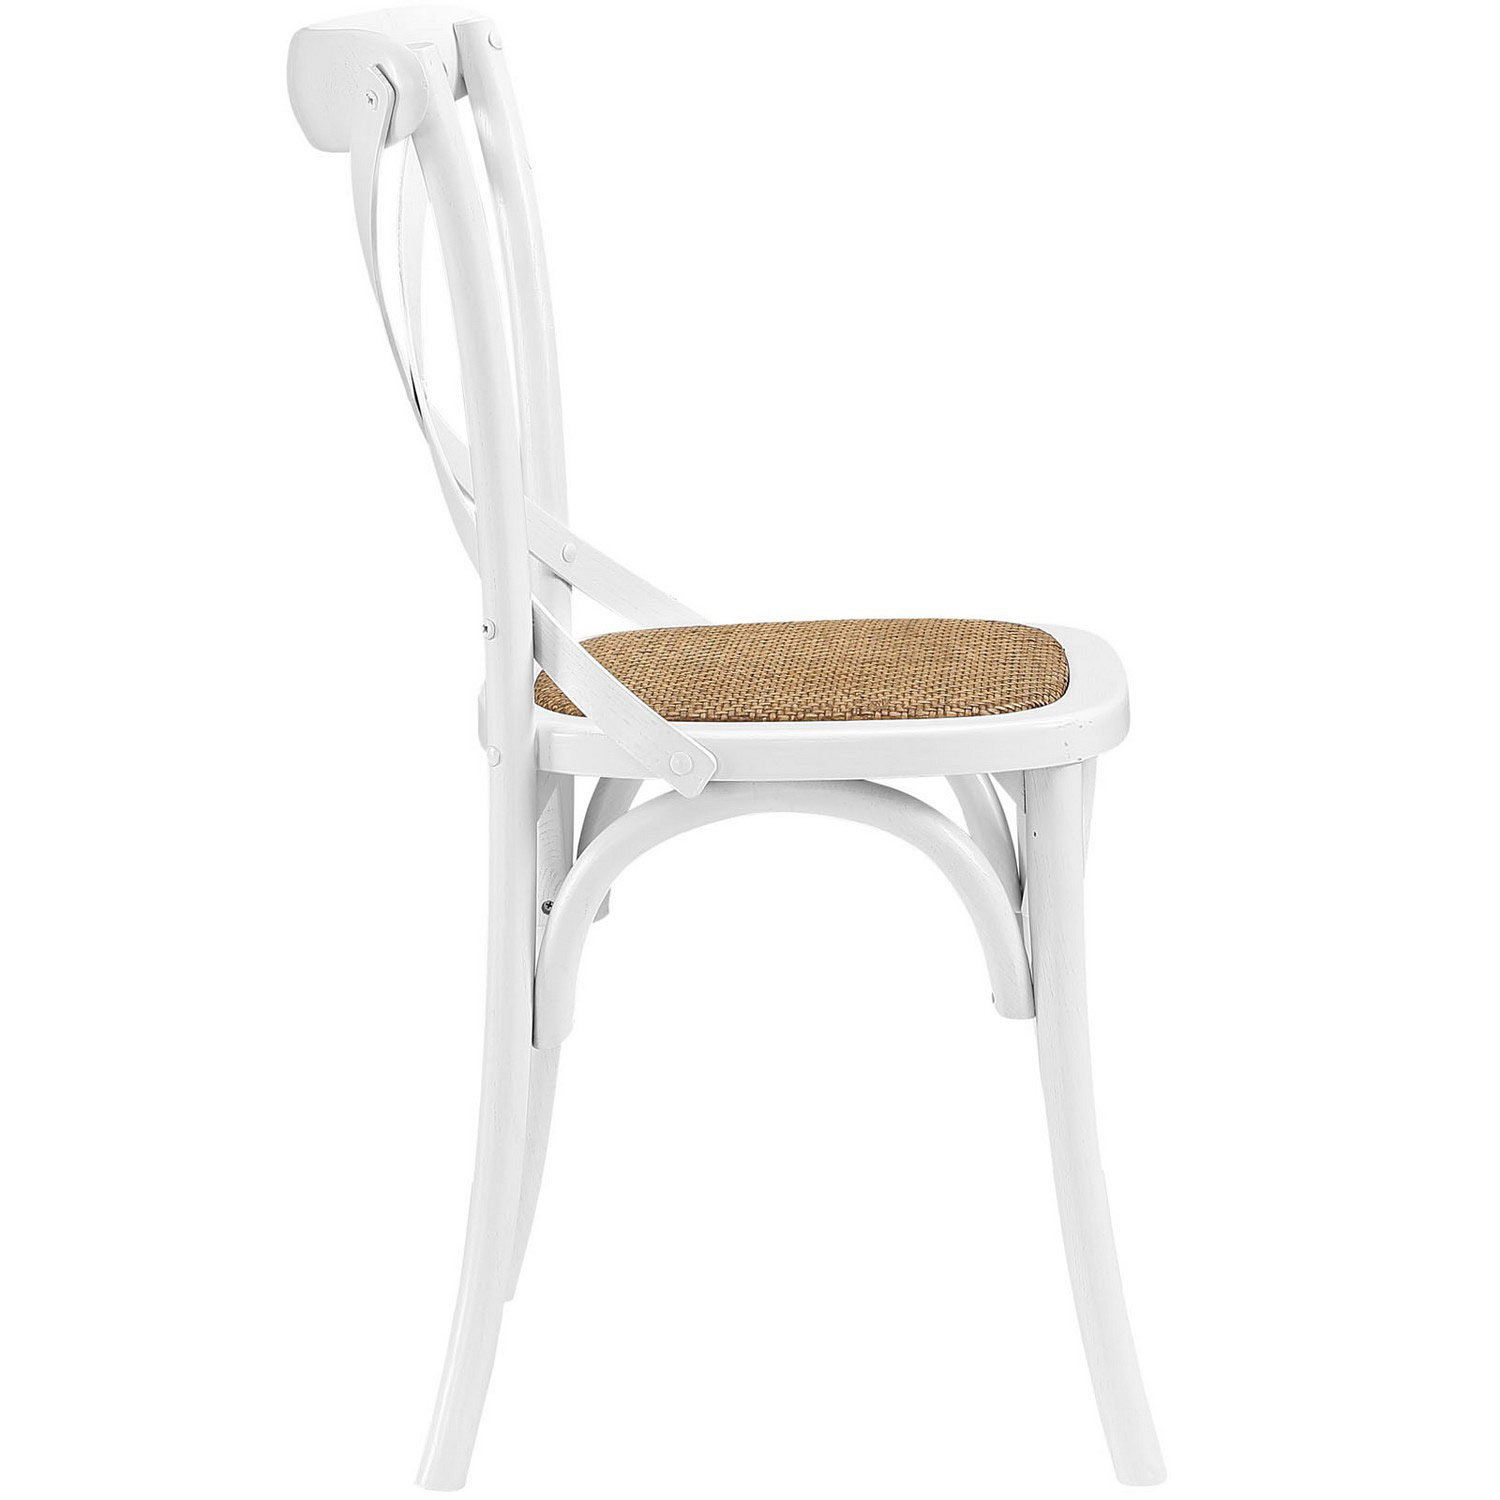 Modway Gear Dining Side Chair - White